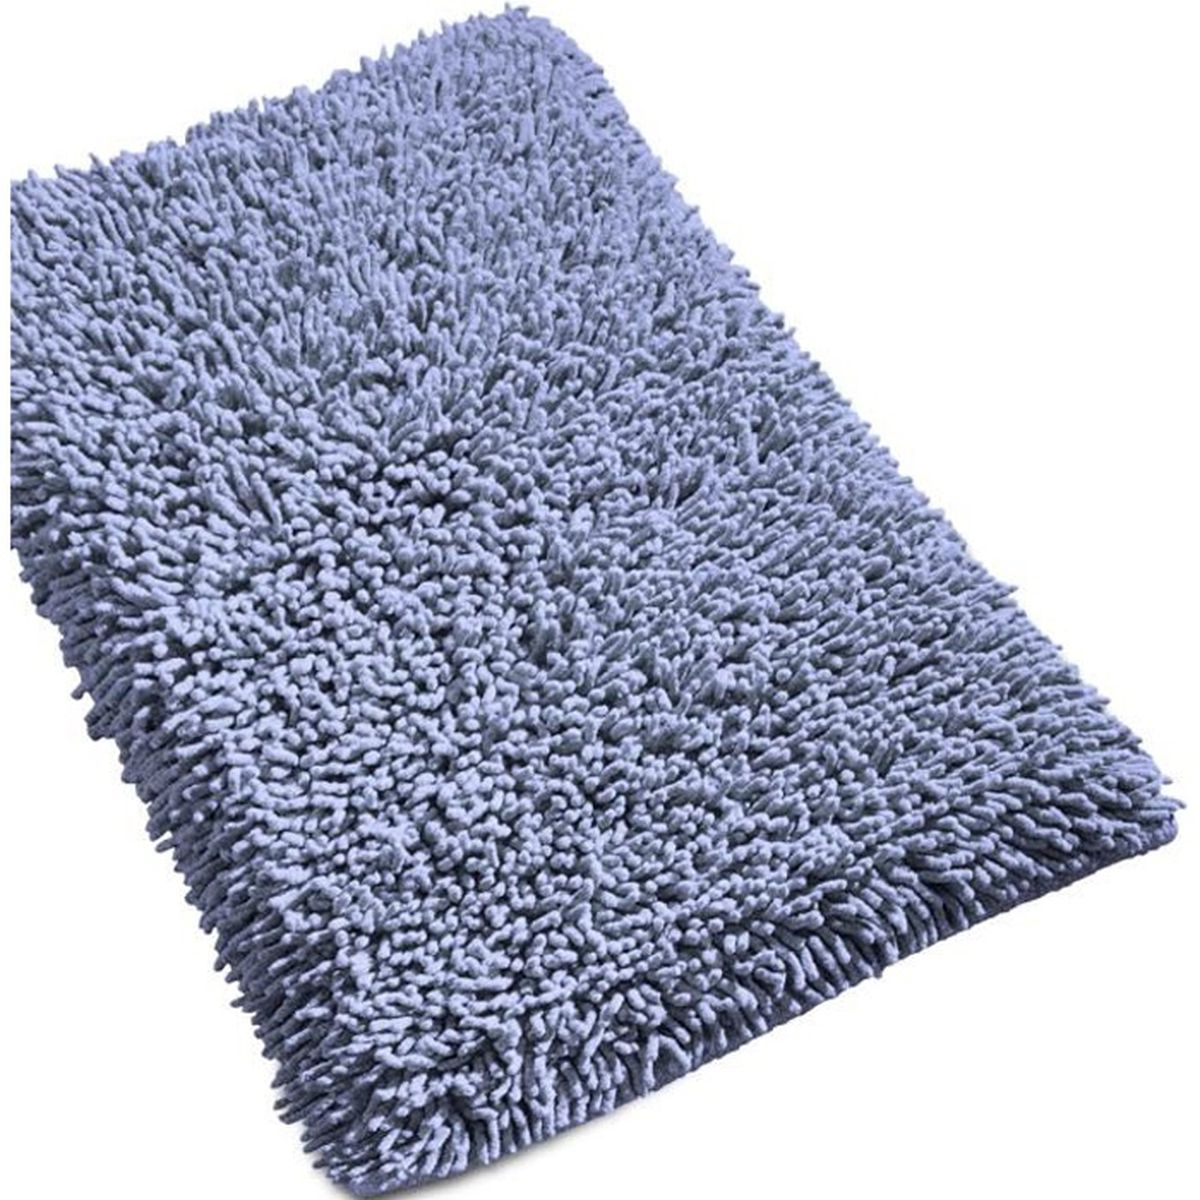 tapis de bain 50x80 cm chenille bleu mer 1800 g m2 achat vente tapis de bain cdiscount. Black Bedroom Furniture Sets. Home Design Ideas